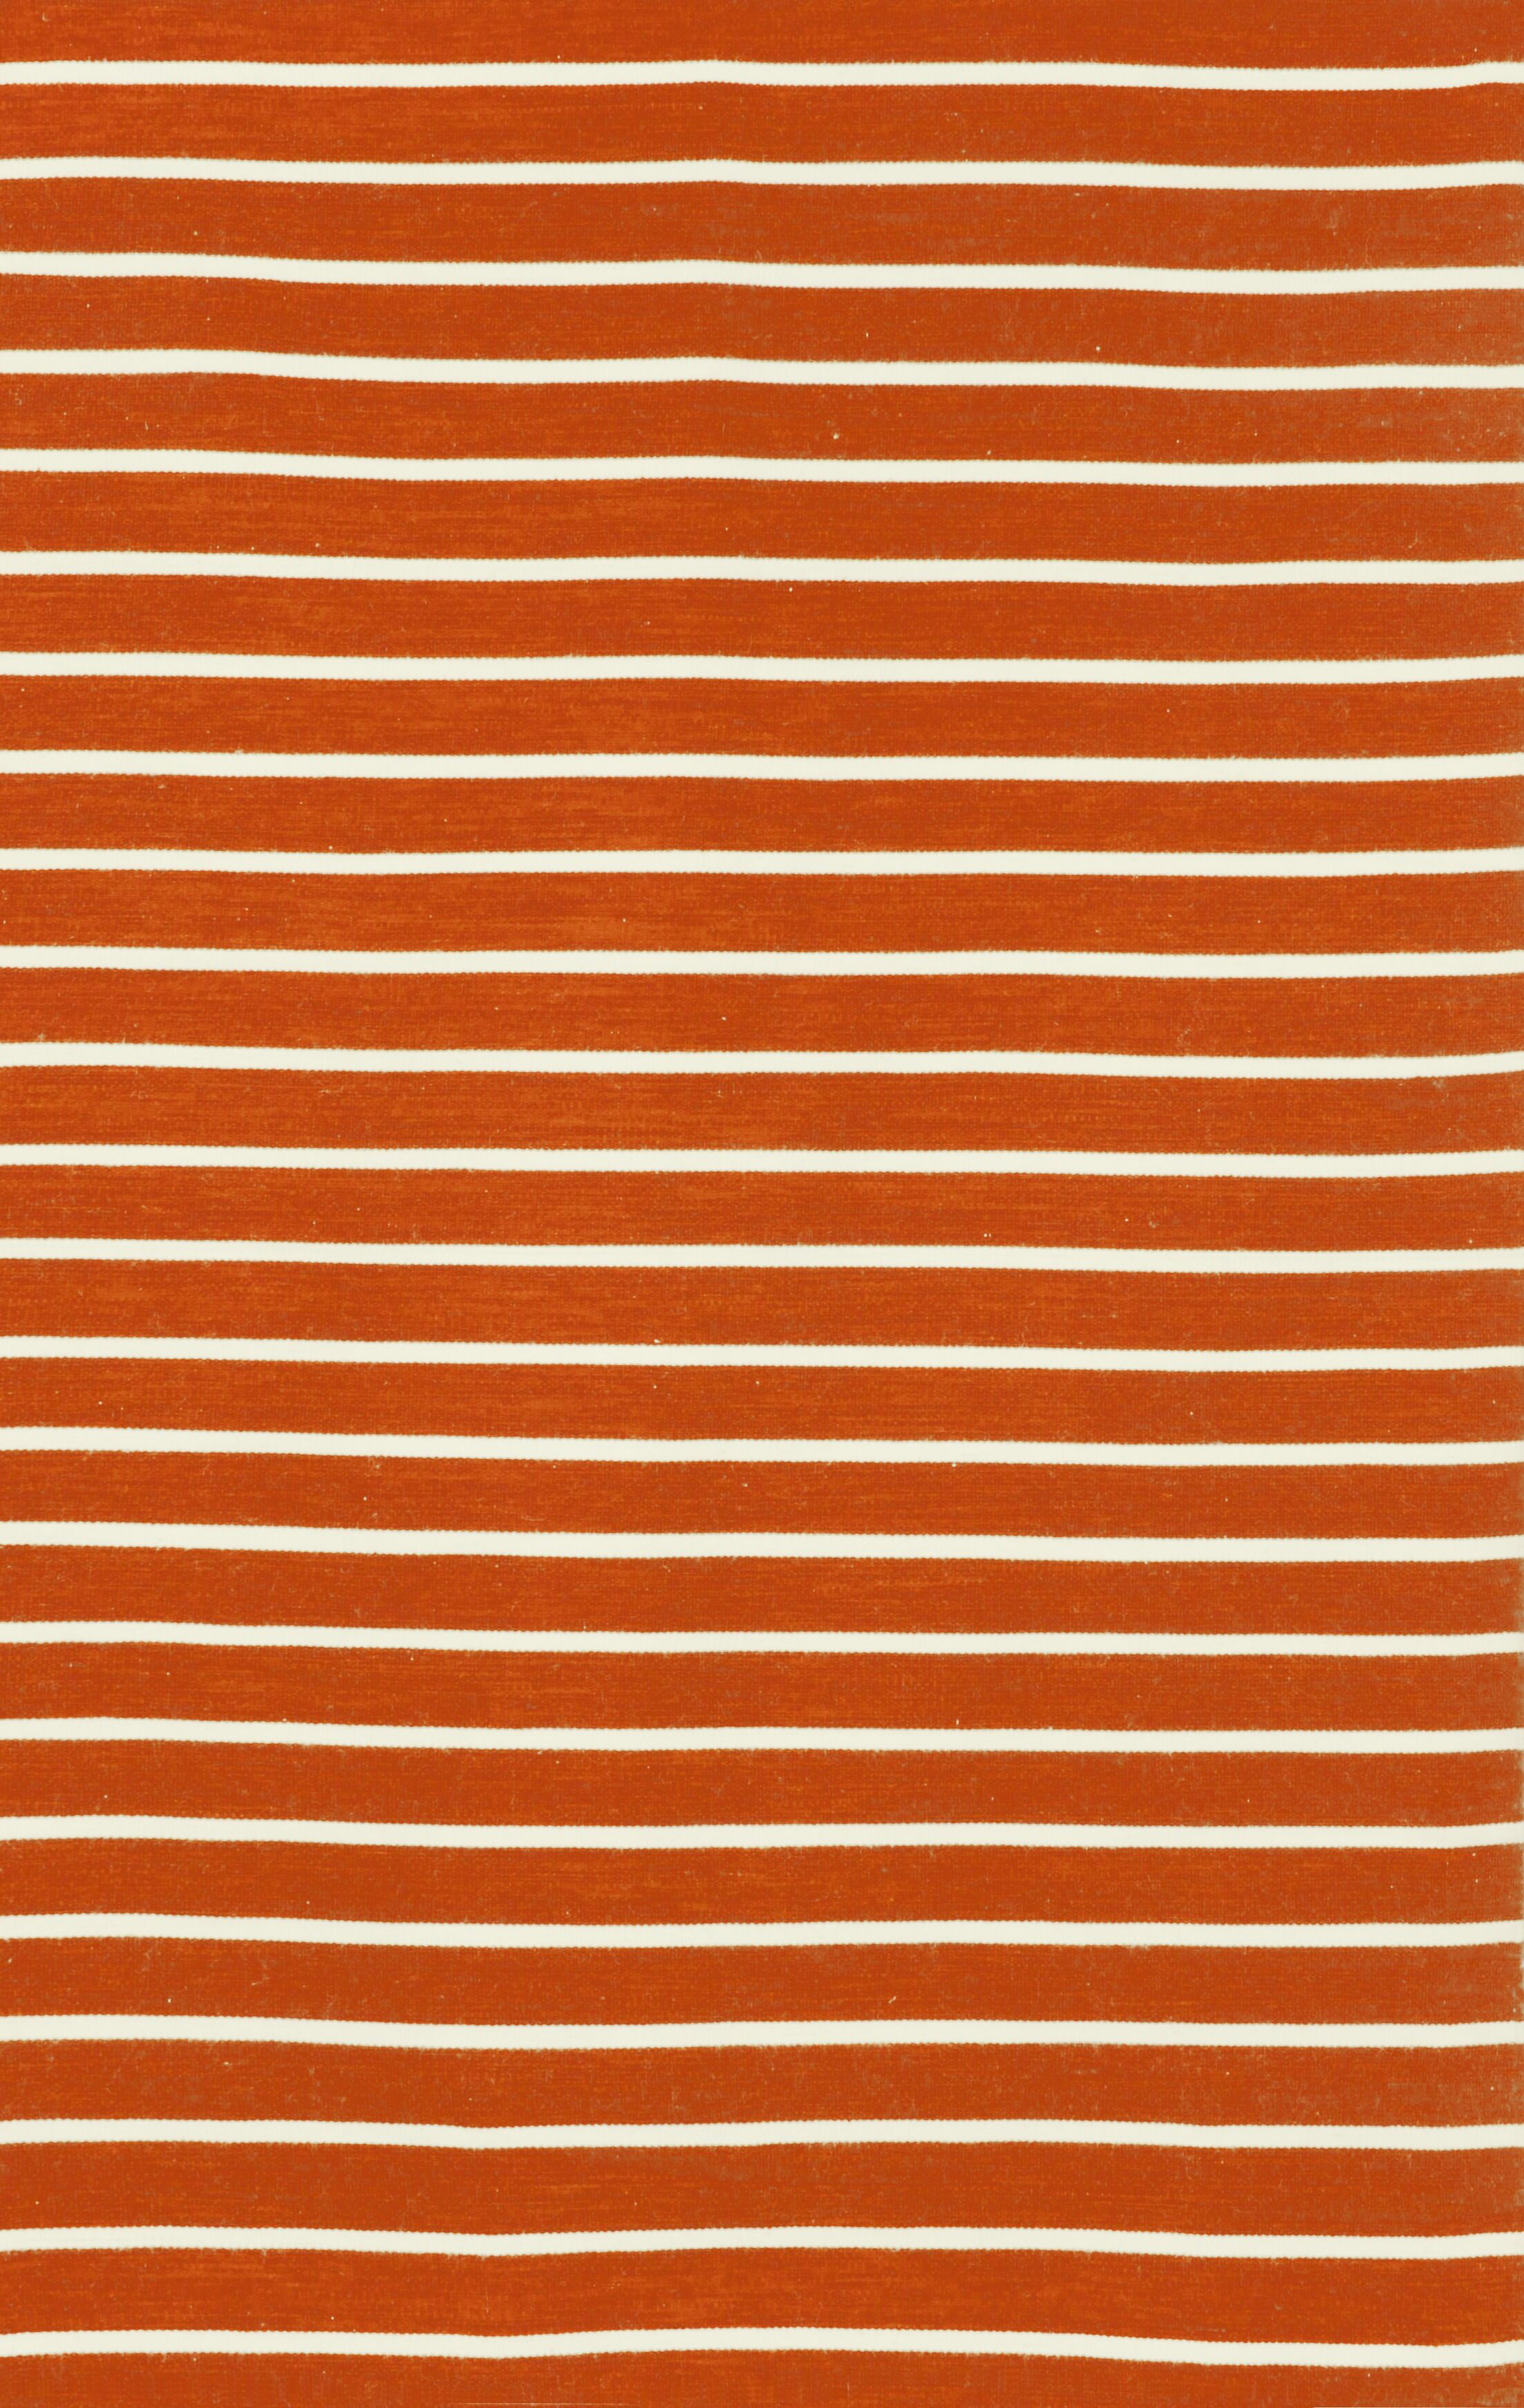 Ranier Pinstripe Hand-Woven Paprika Orange Indoor/Outdoor Area Rug Rug Size: Rectangle 7'6